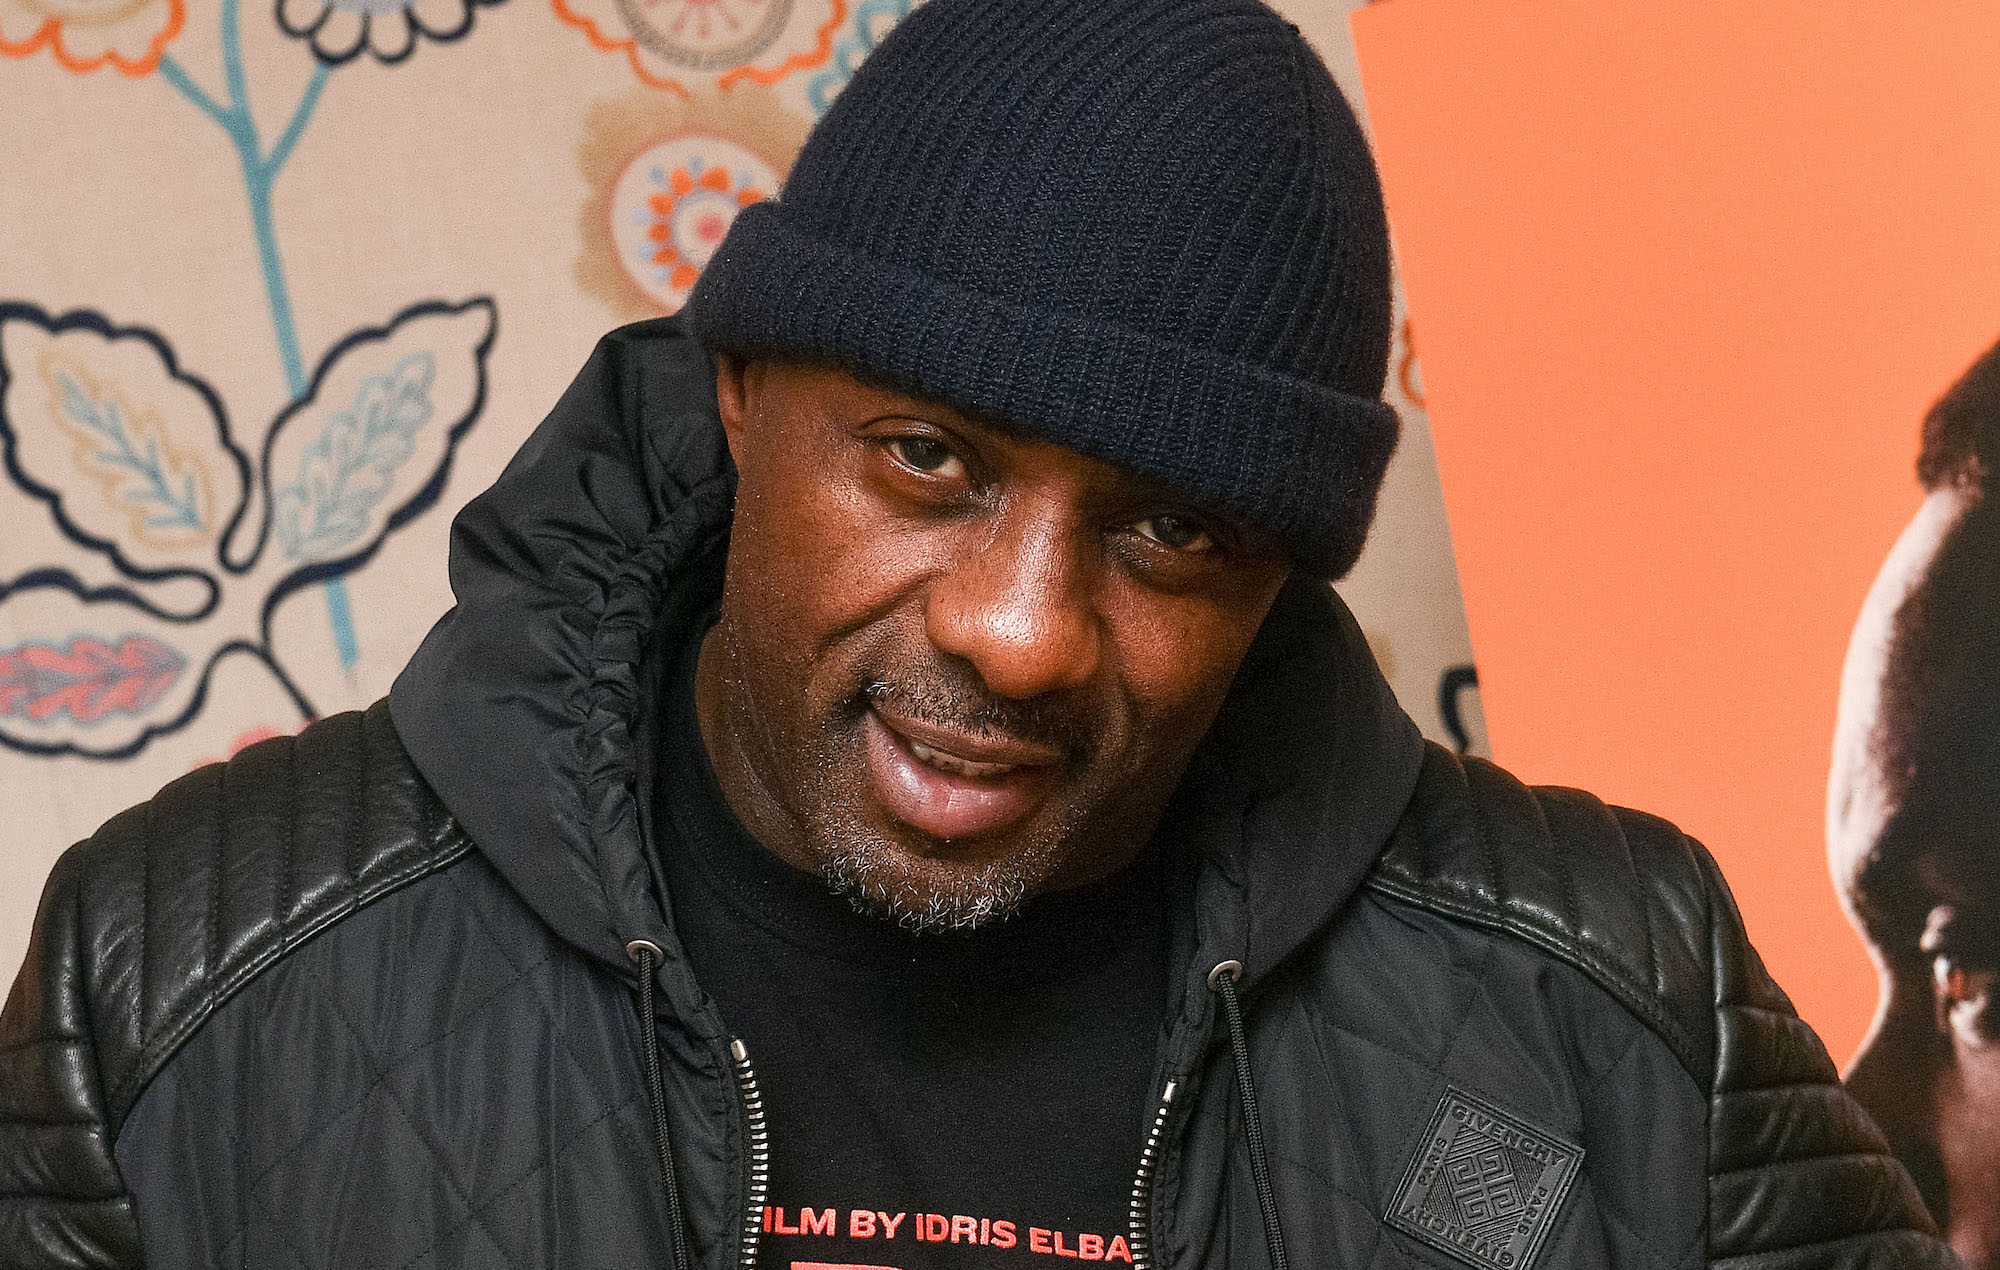 Idris Elba says racist TV shows should be rated, not removed